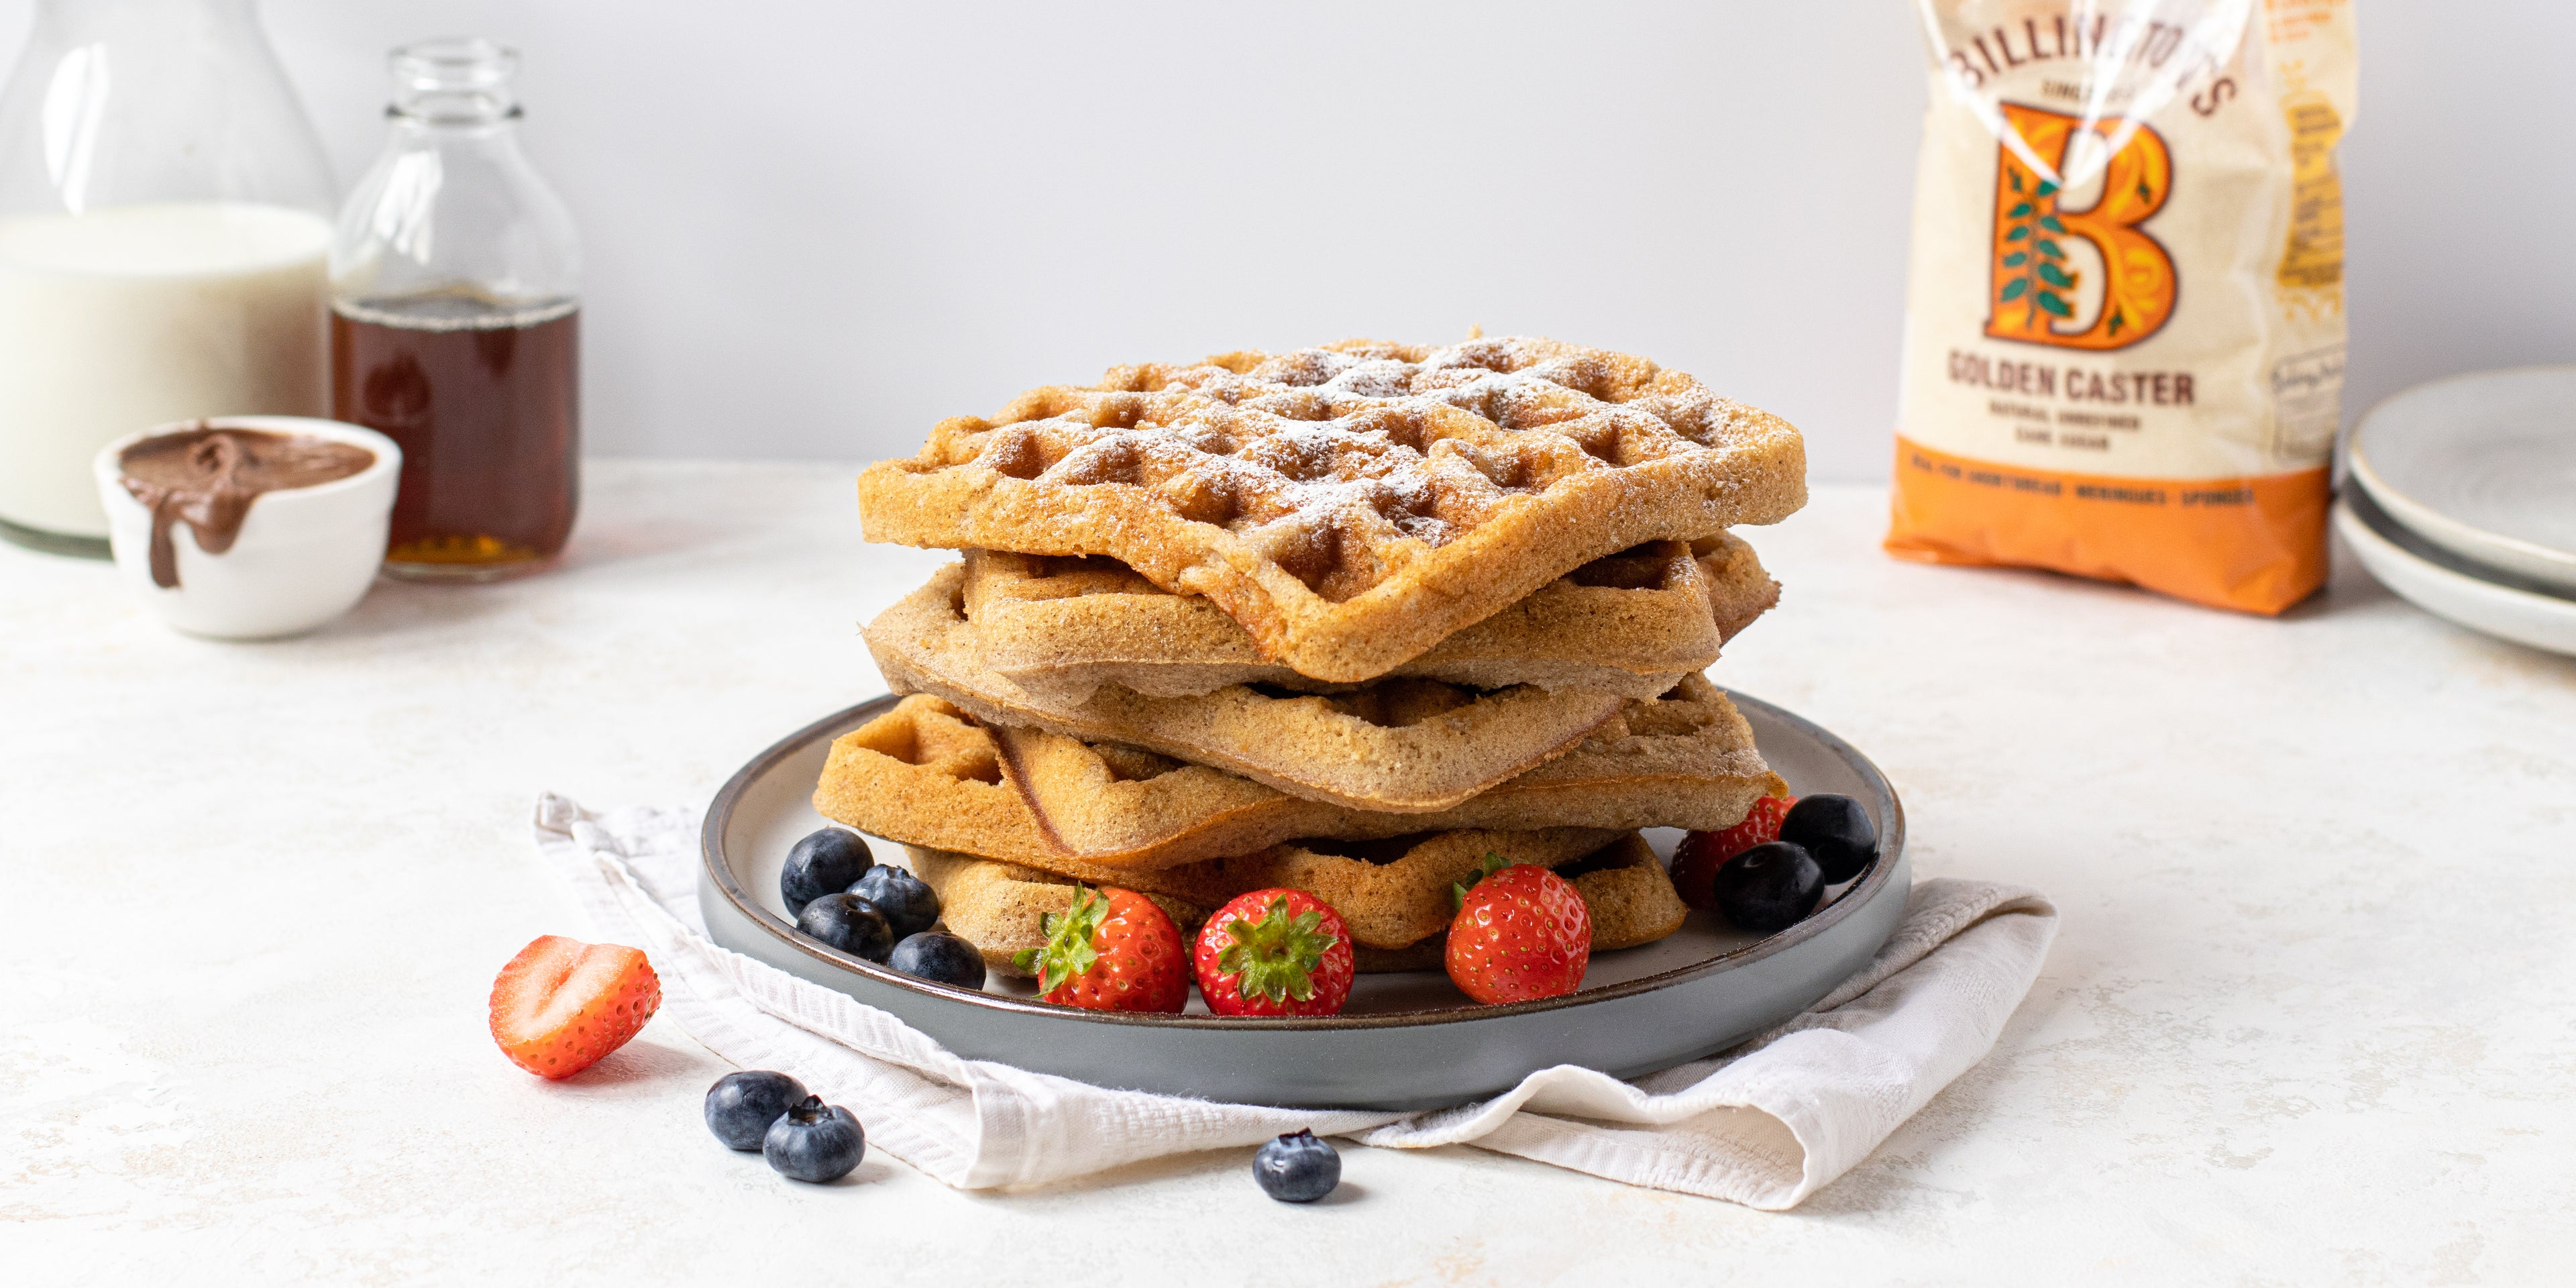 Close up of a stack of fresh Waffles dusted with icing sugar and berries, with a bag of Billington's Golden Caster sugar in the background